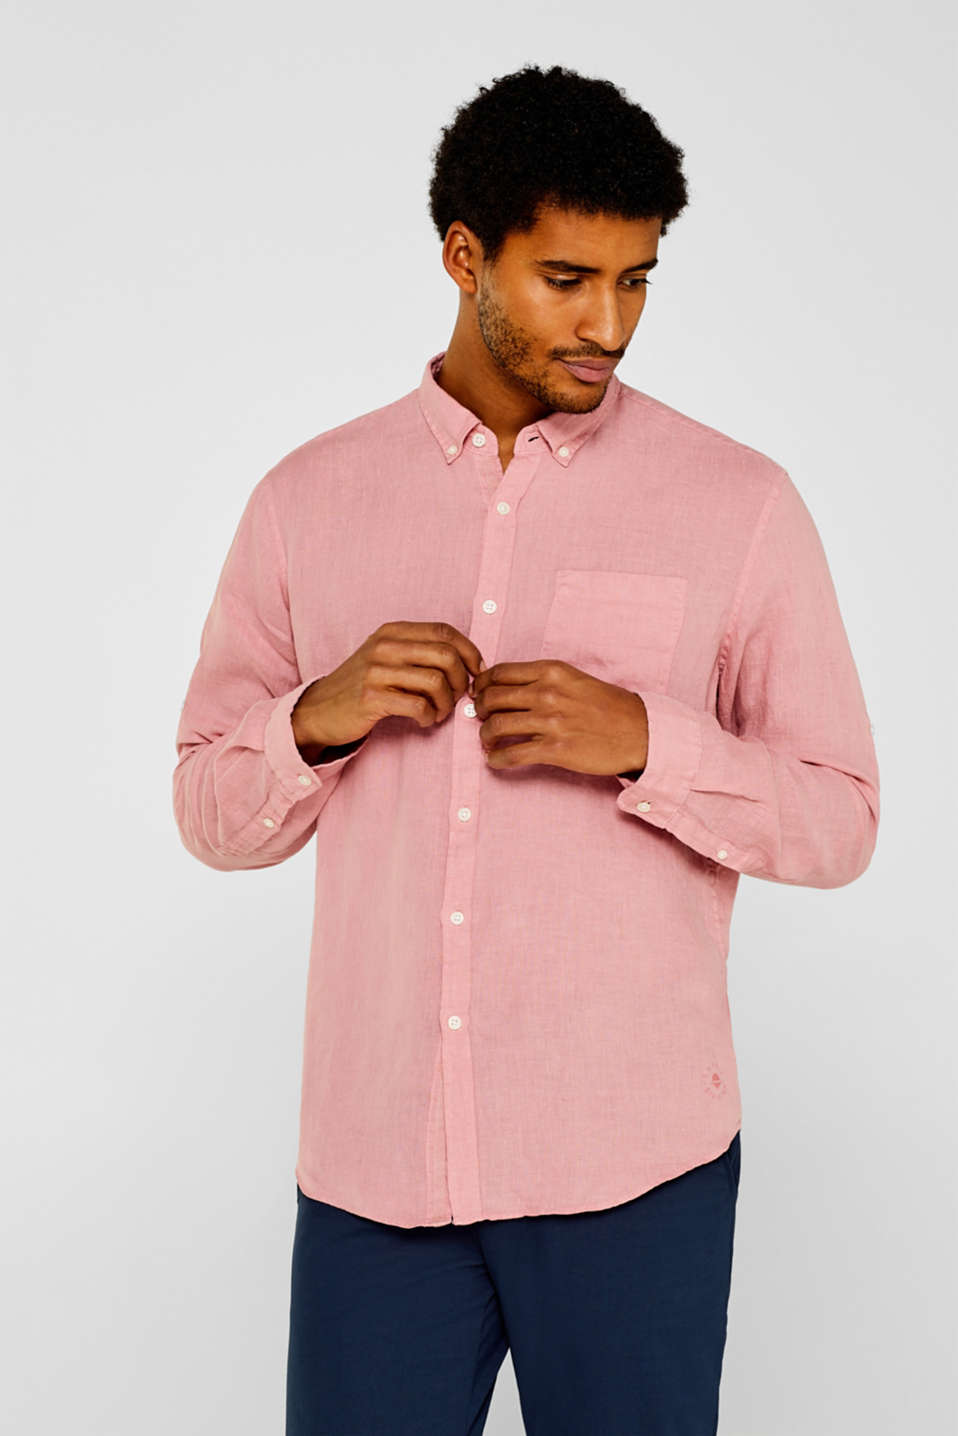 Esprit - 100% linen shirt with a button-down collar